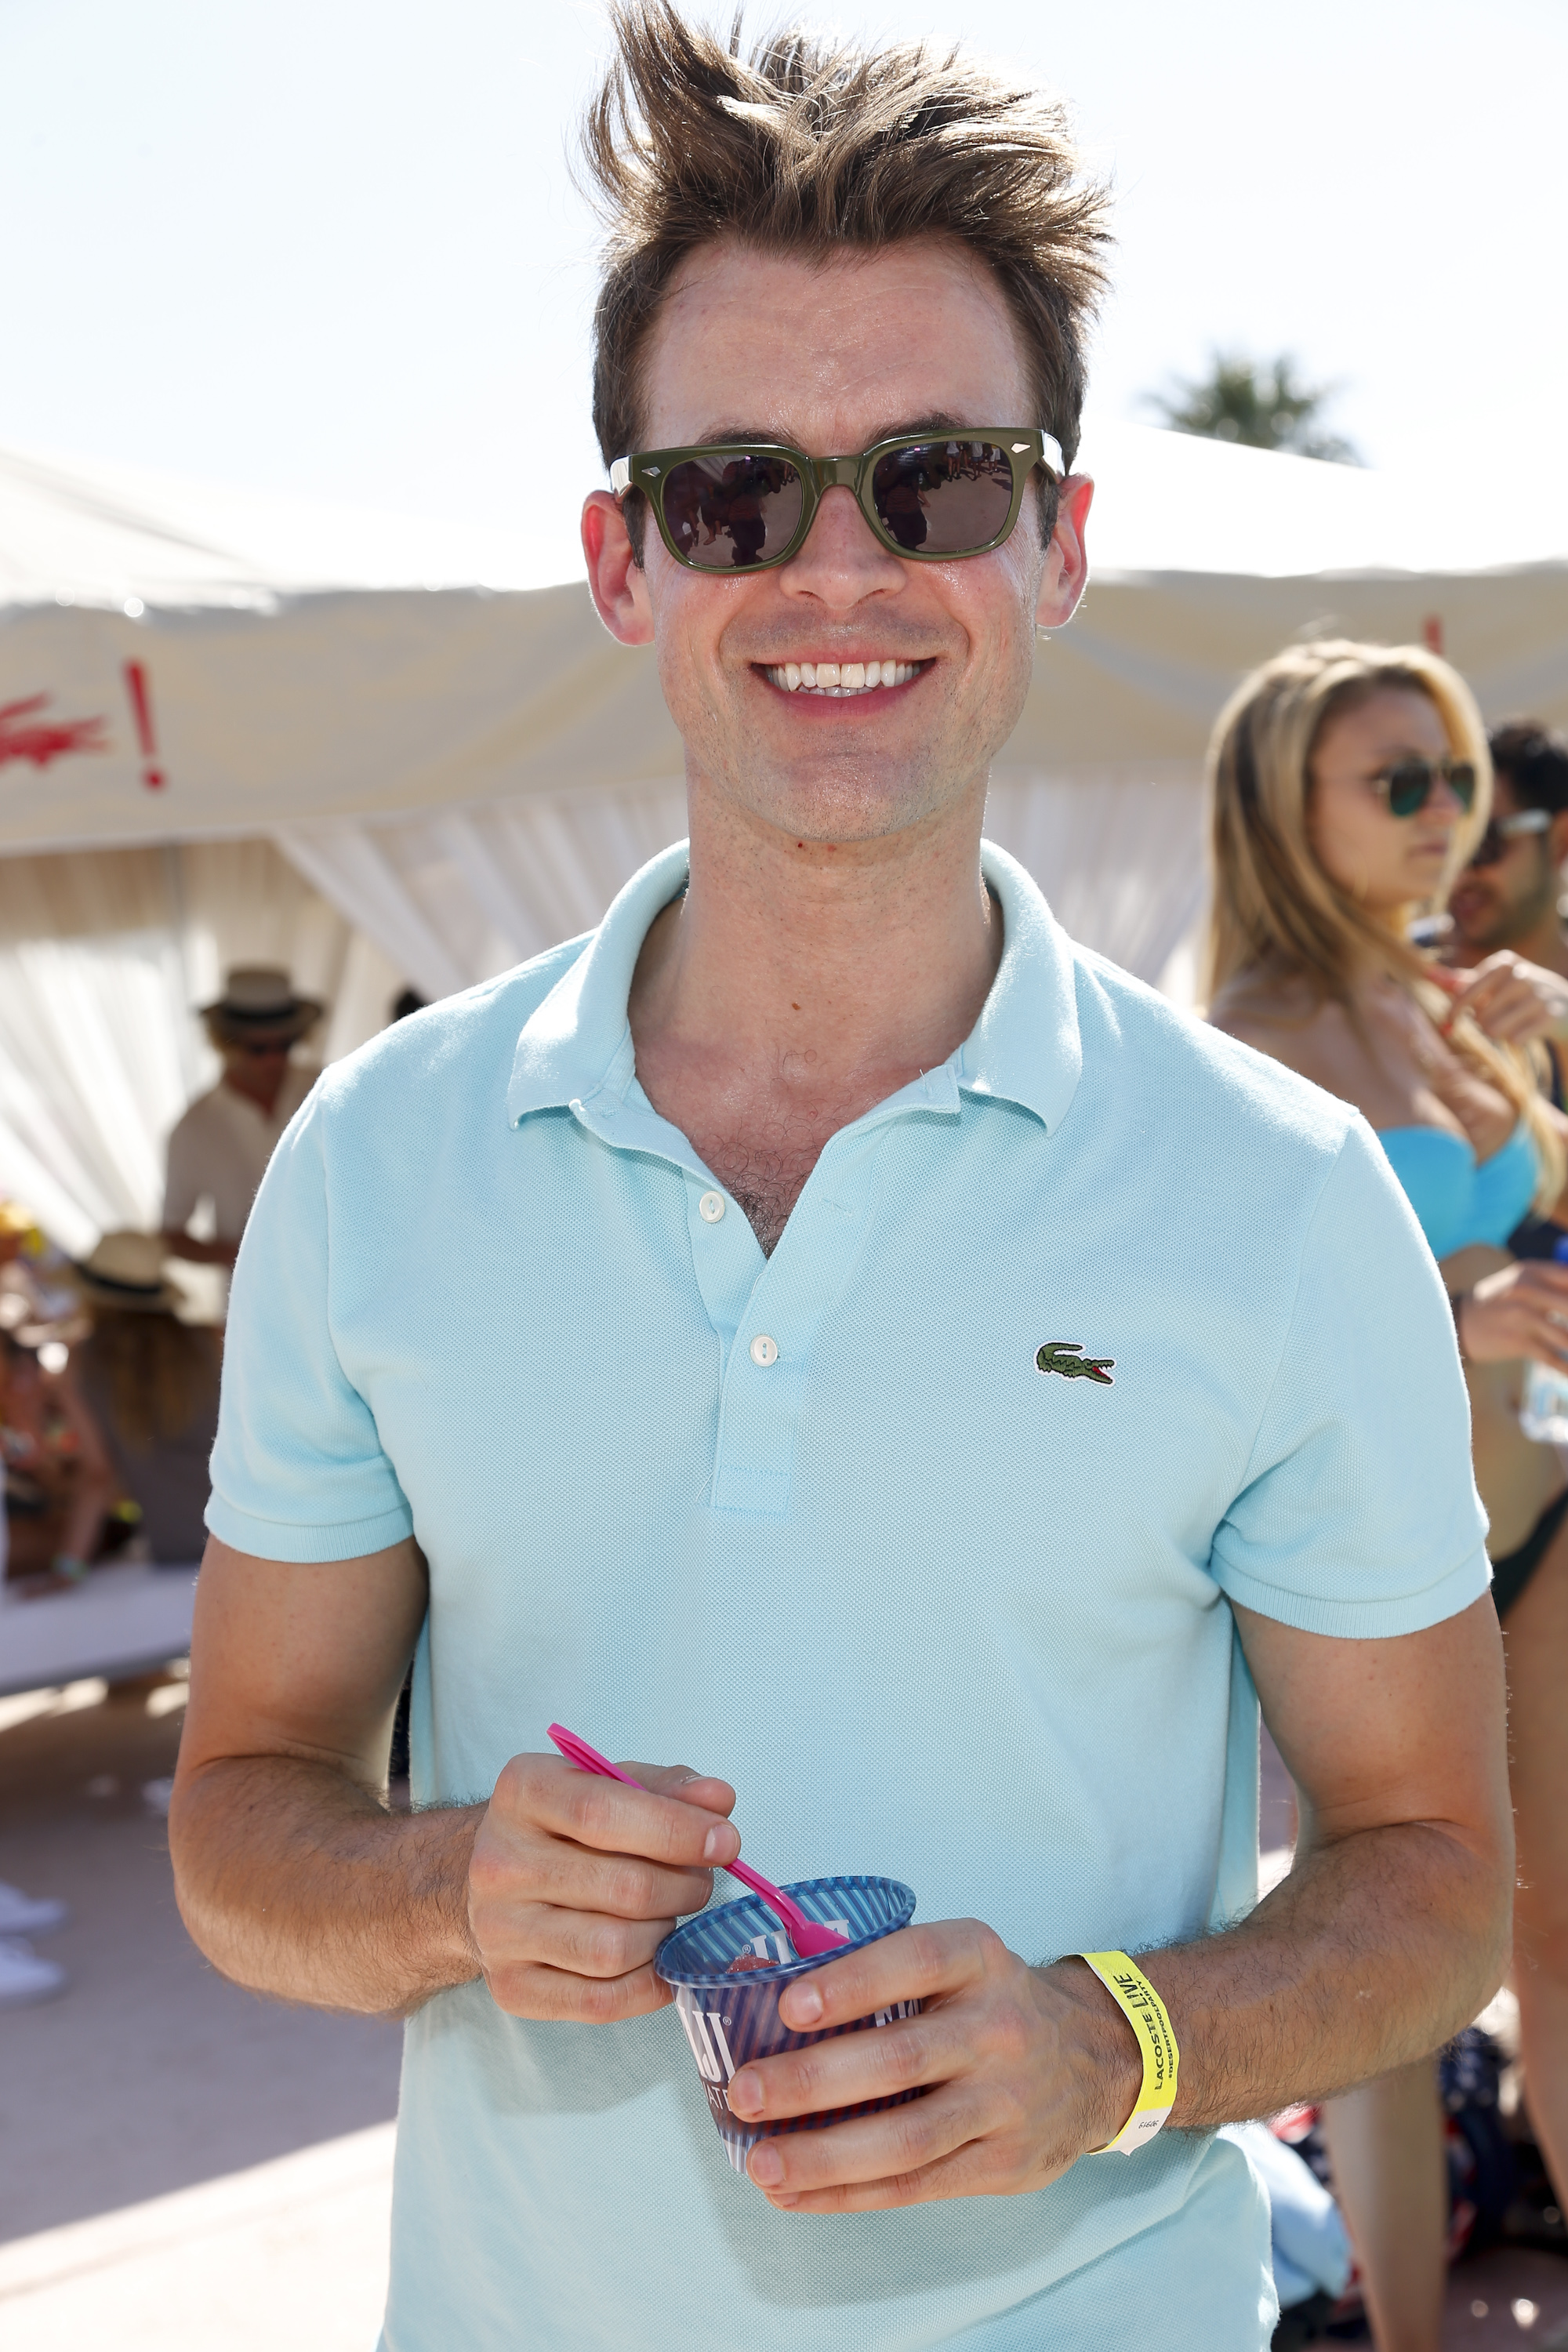 Brad Goreski smiled at the Fiji Water at Lacoste L!ve Coachella Desert Pool Party event in 2013.